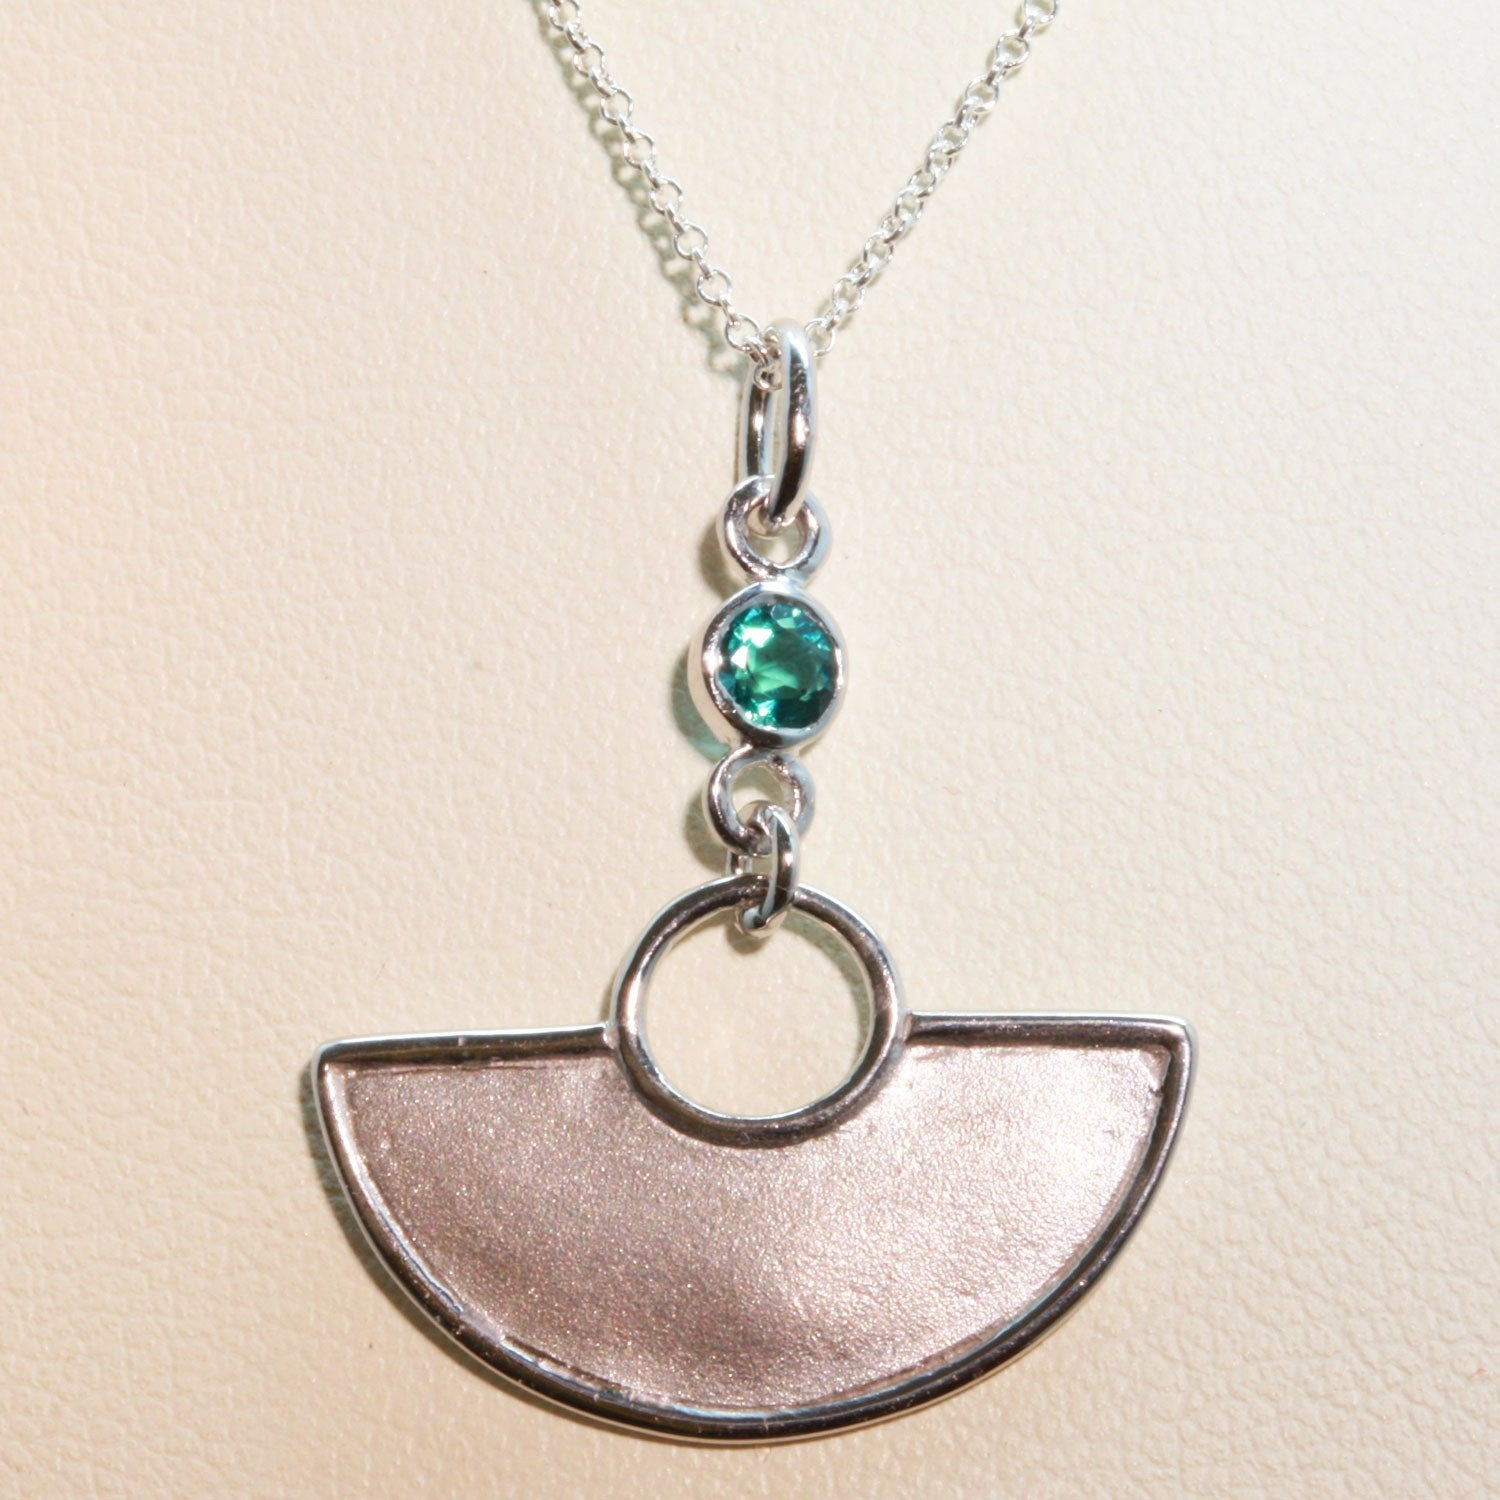 A stunning African Style 925 silver pendant with a Tourmaline Shard which hangs perfectly through a silver circle.